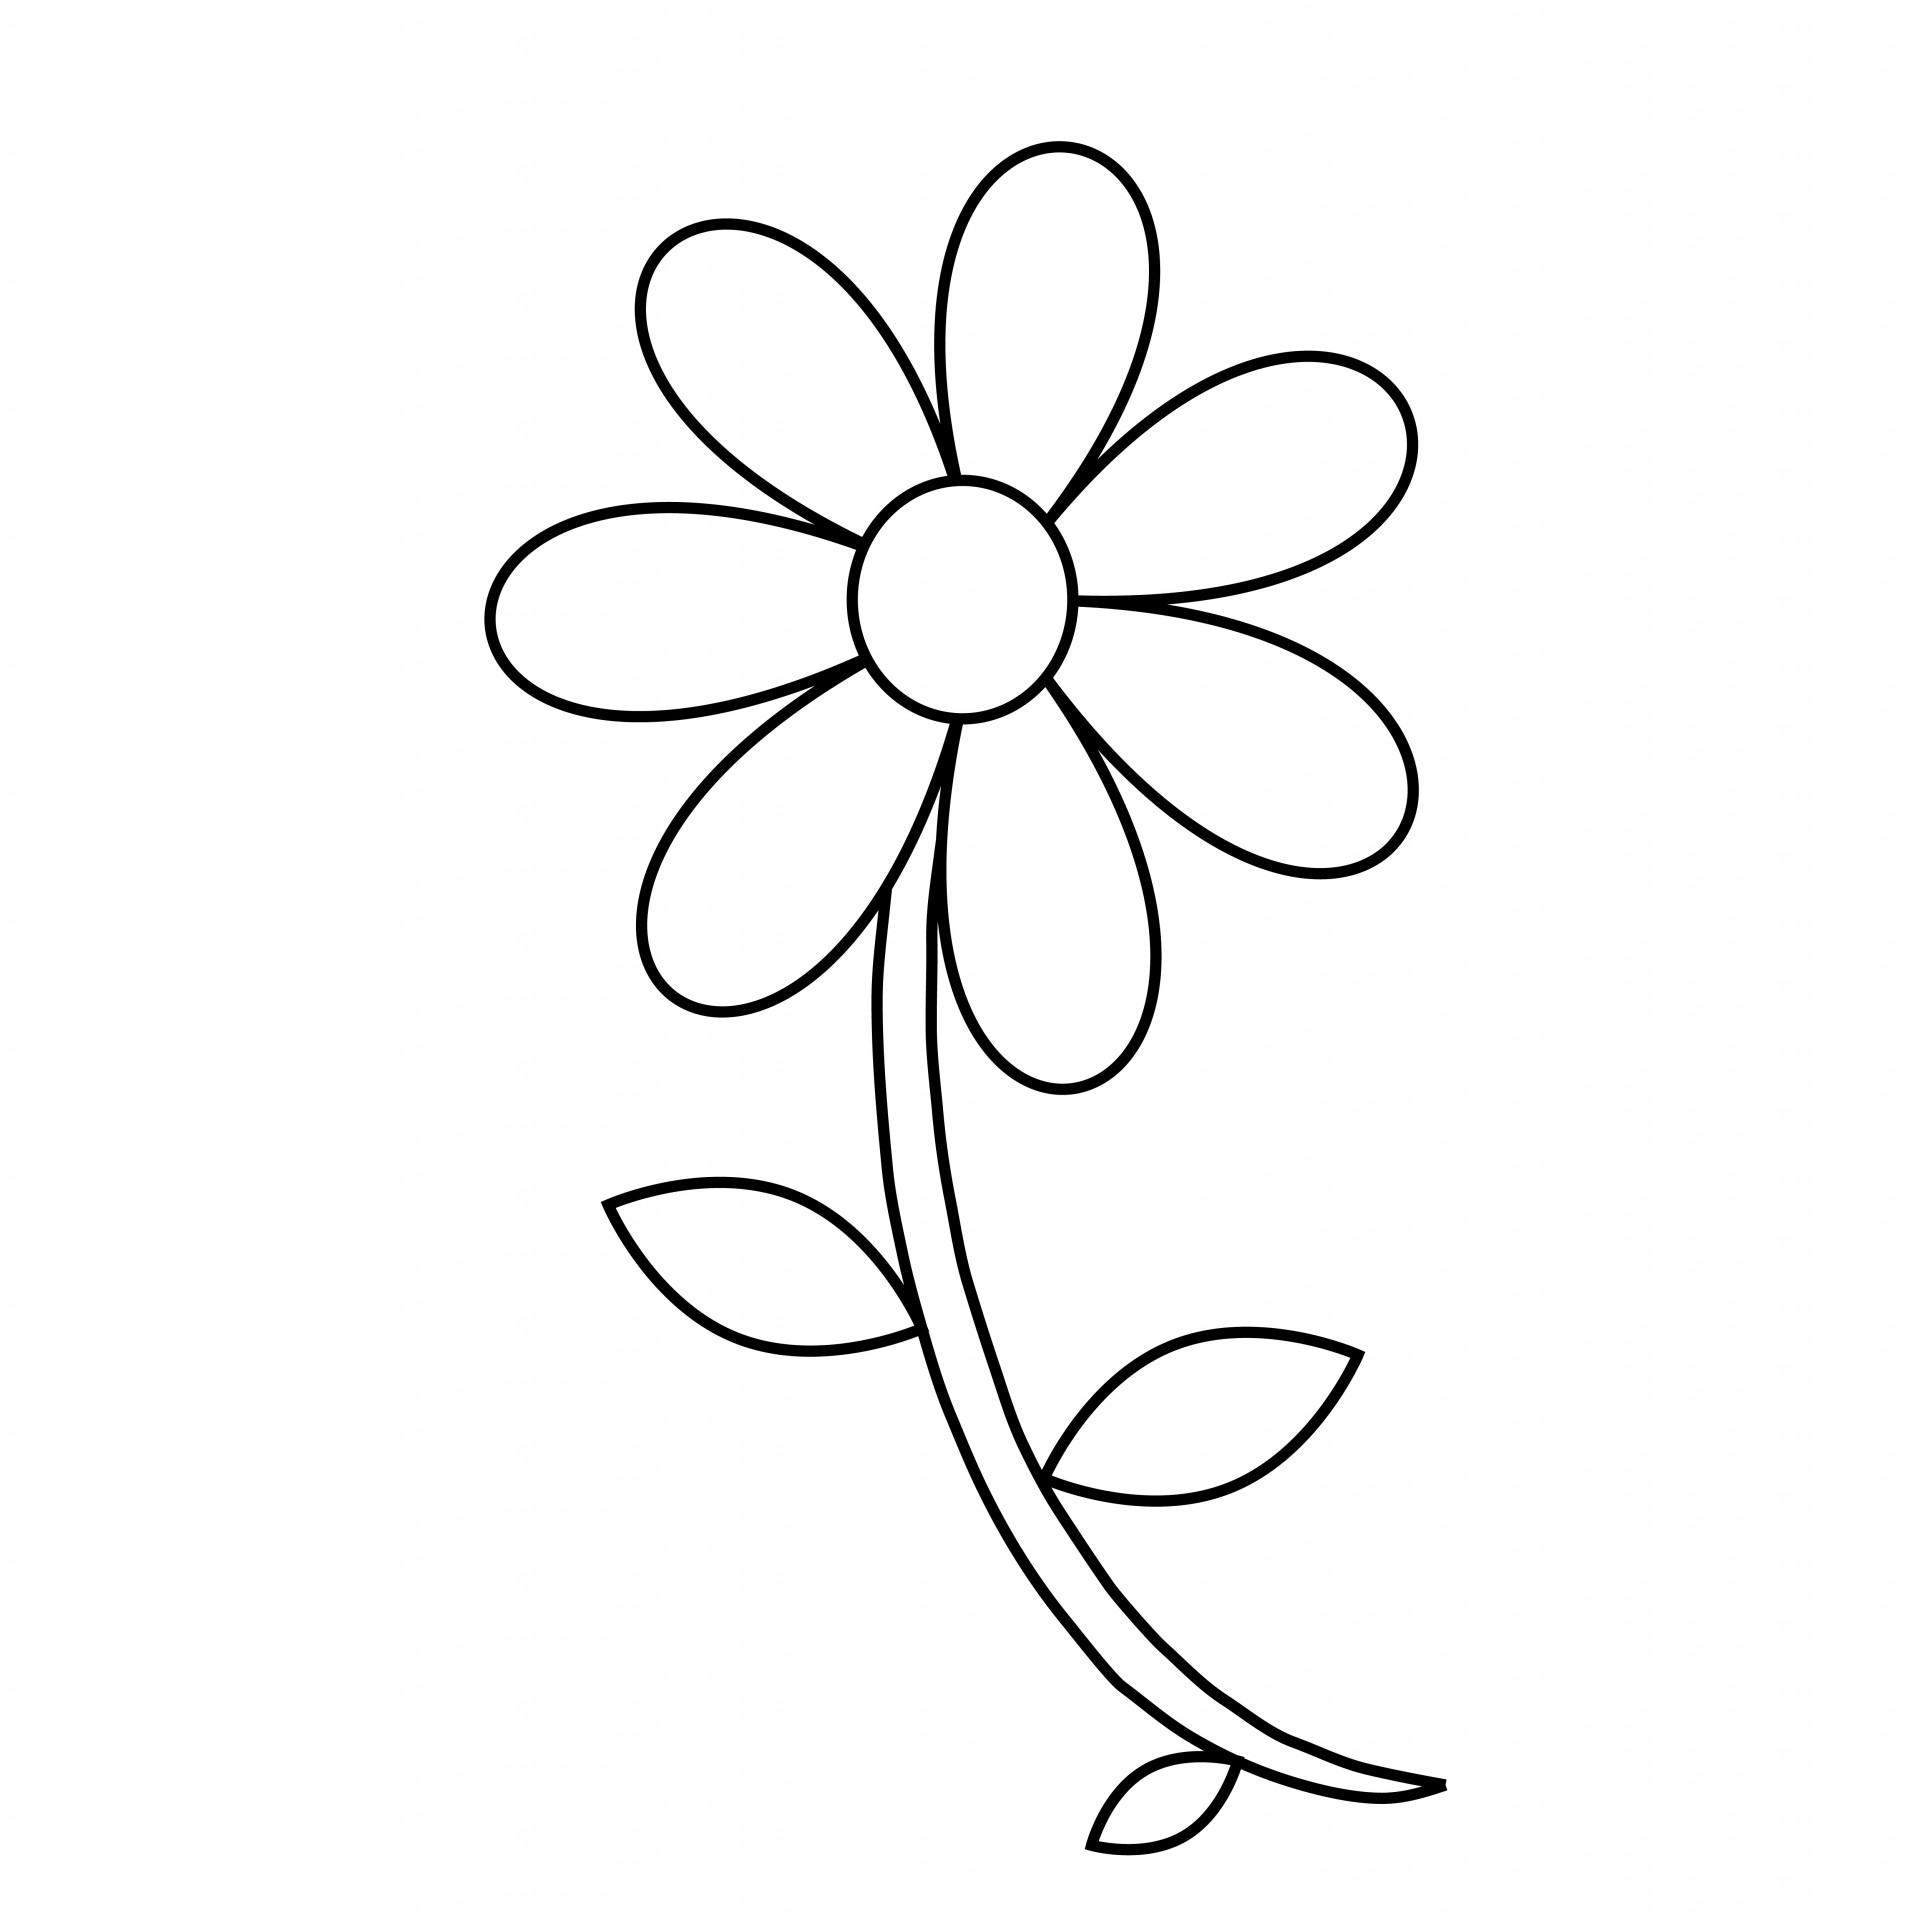 Flower,floral,outline,coloring page,coloring book - free ...